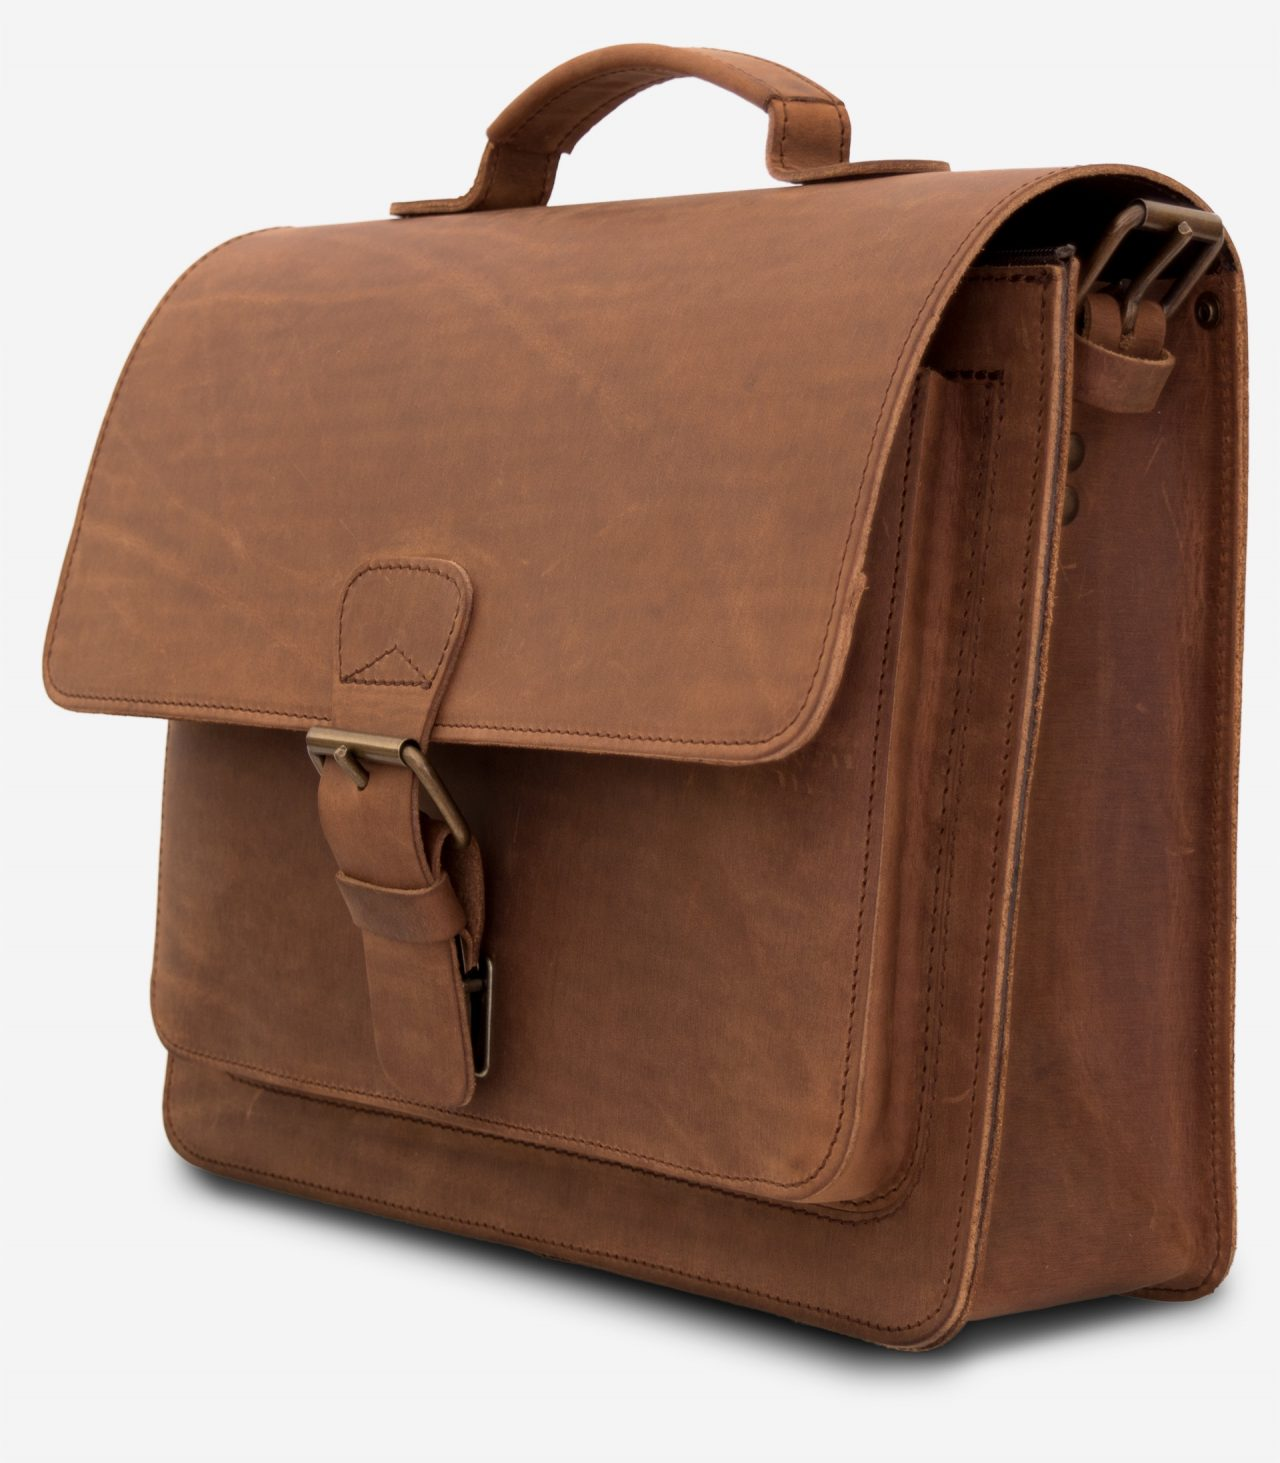 Side view of the brown leather briefcase with a single compartment.